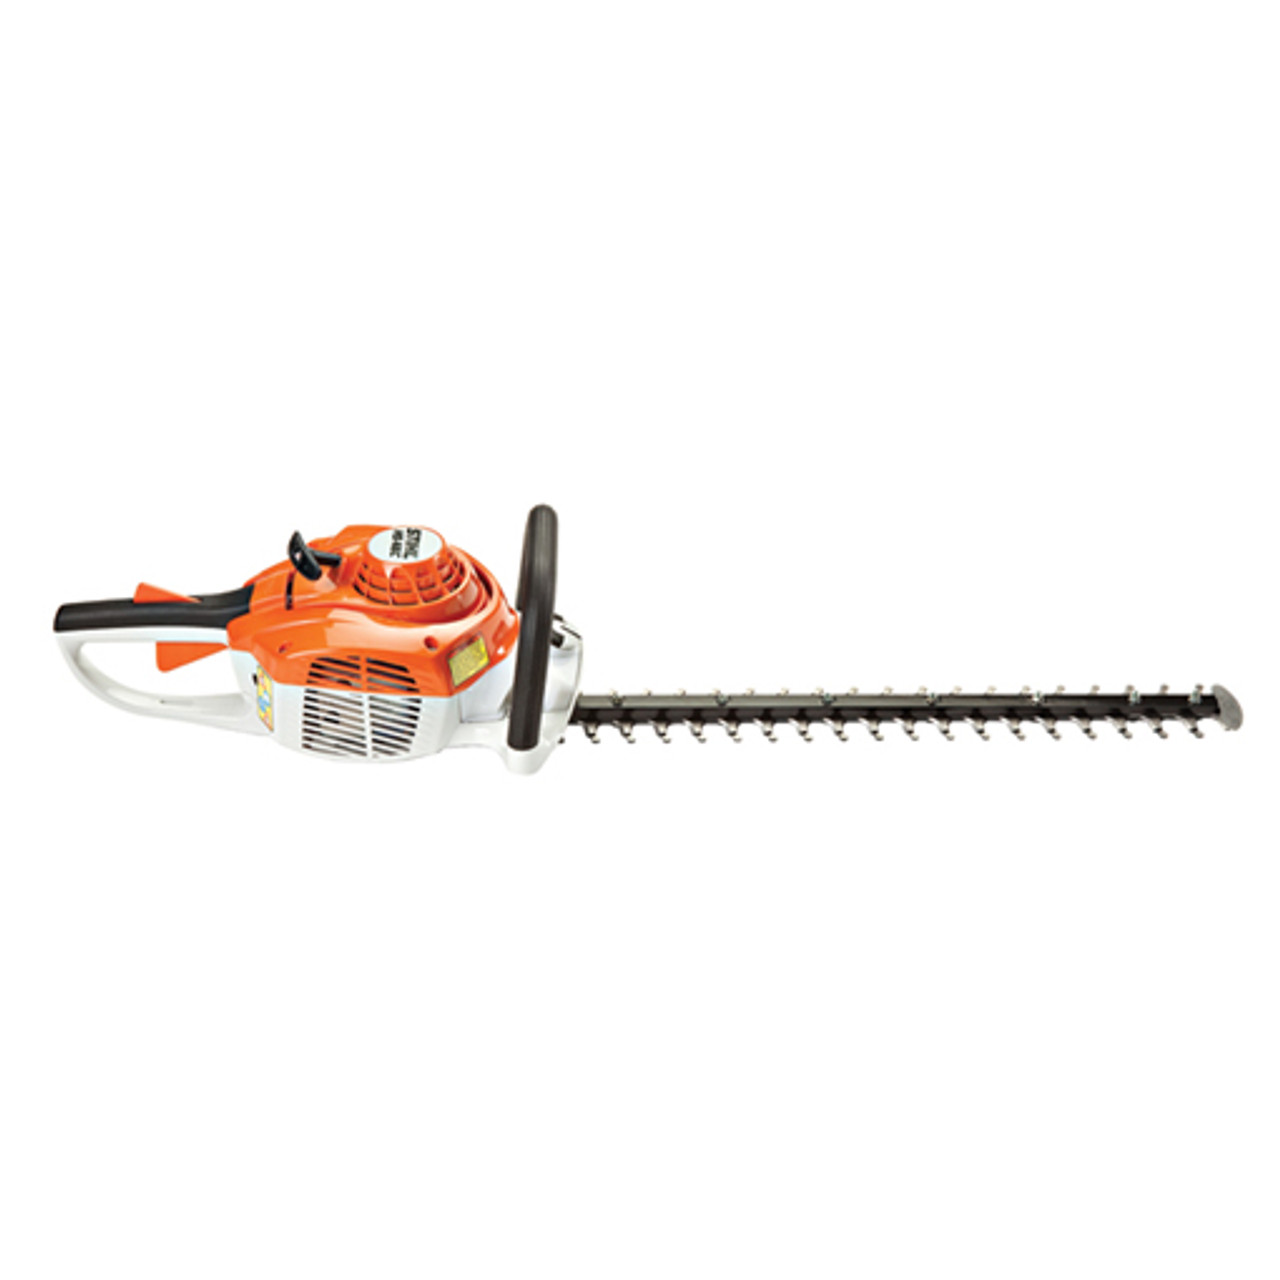 "STIHL HS 46 C-E 21.7cc Hedge Trimmer w/ 22"" Double-Sided Blades & Easy2Start Image"